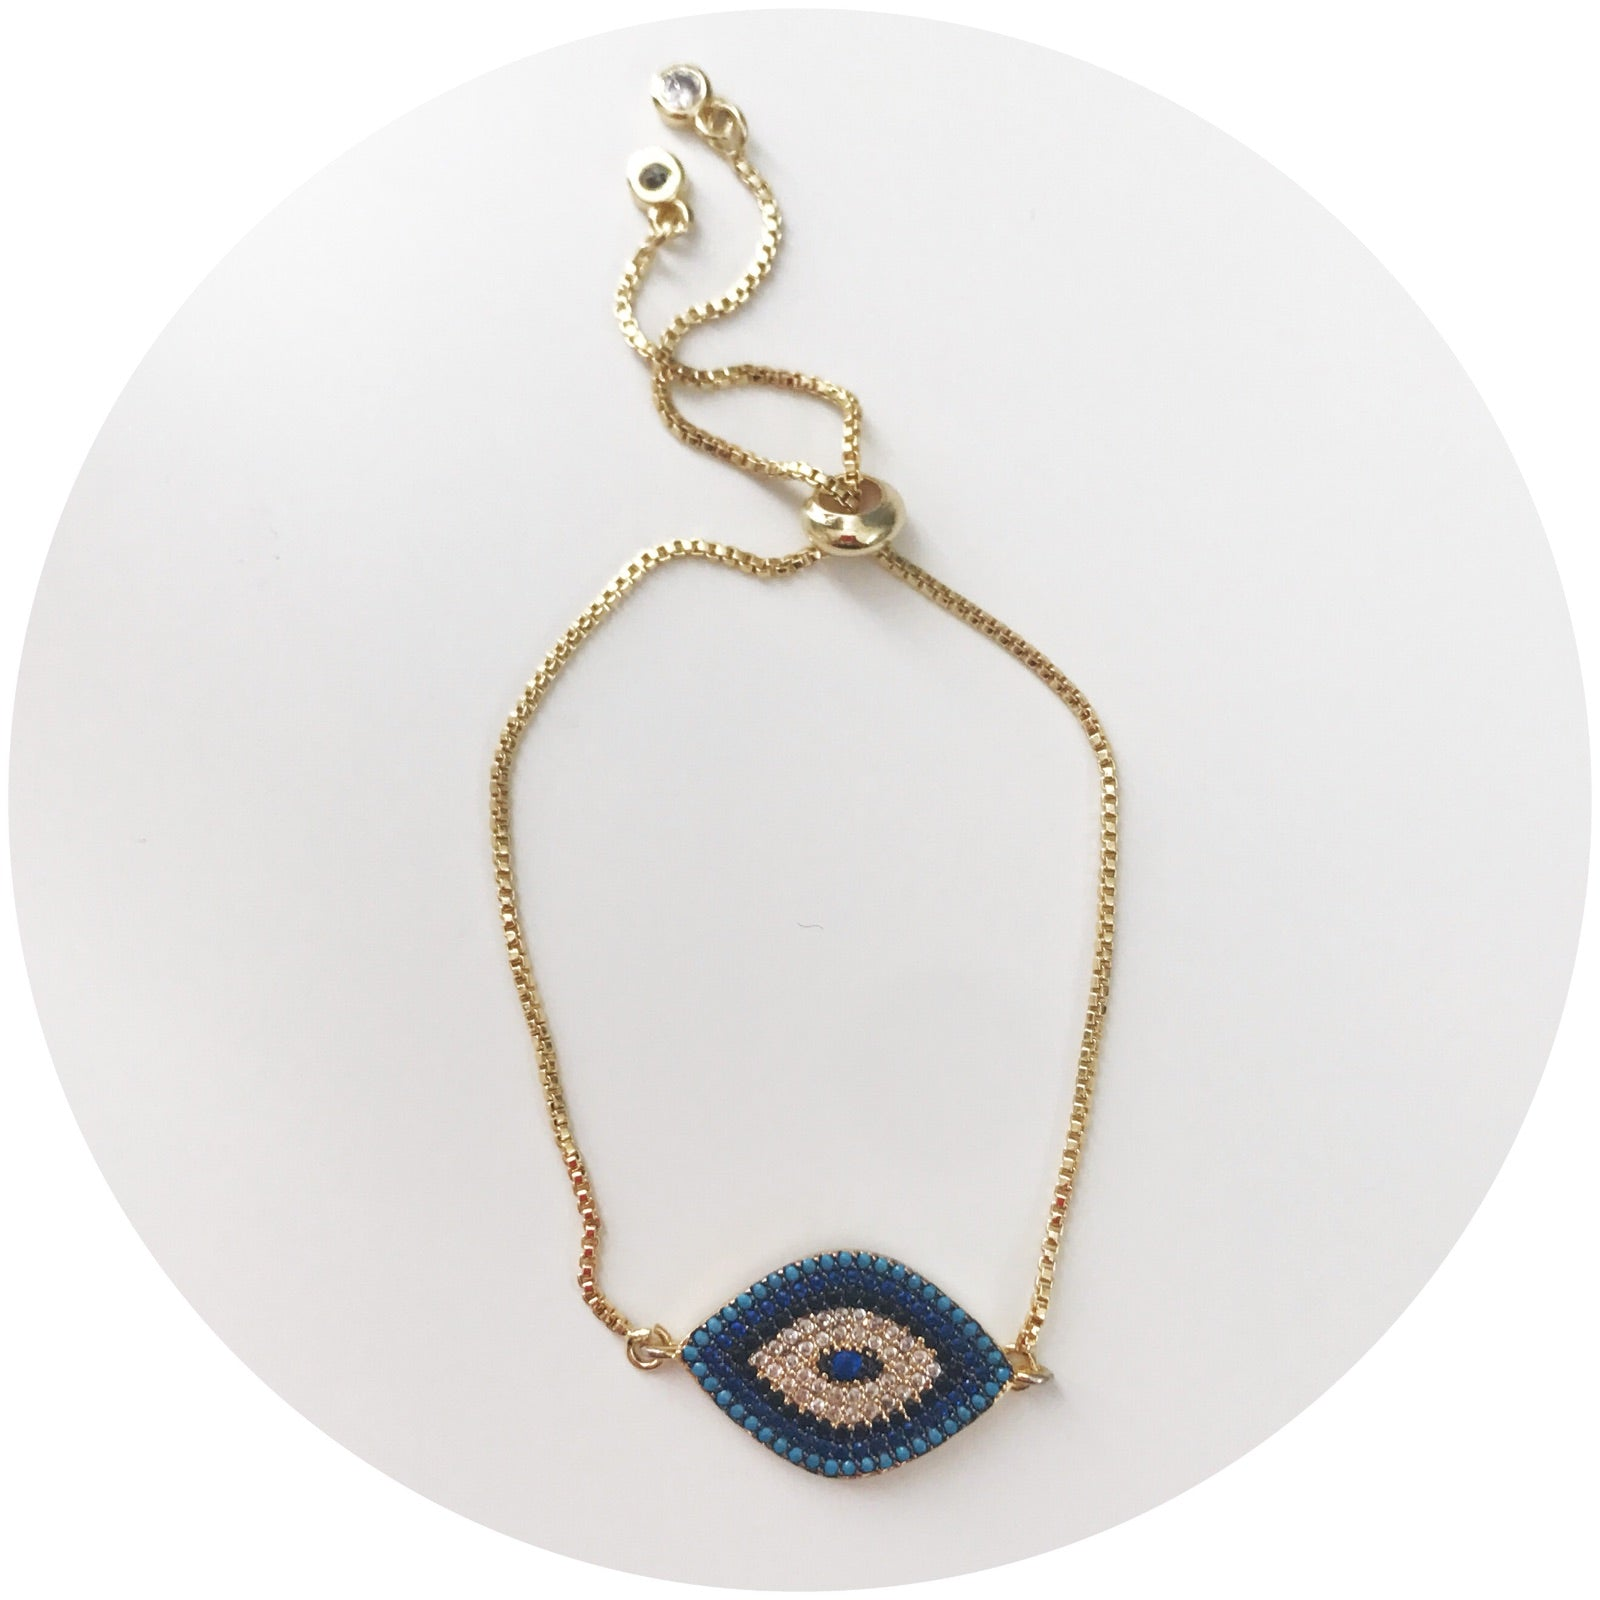 Blue Pavé Evil Eye with Adjustable Chain - Oriana Lamarca LLC